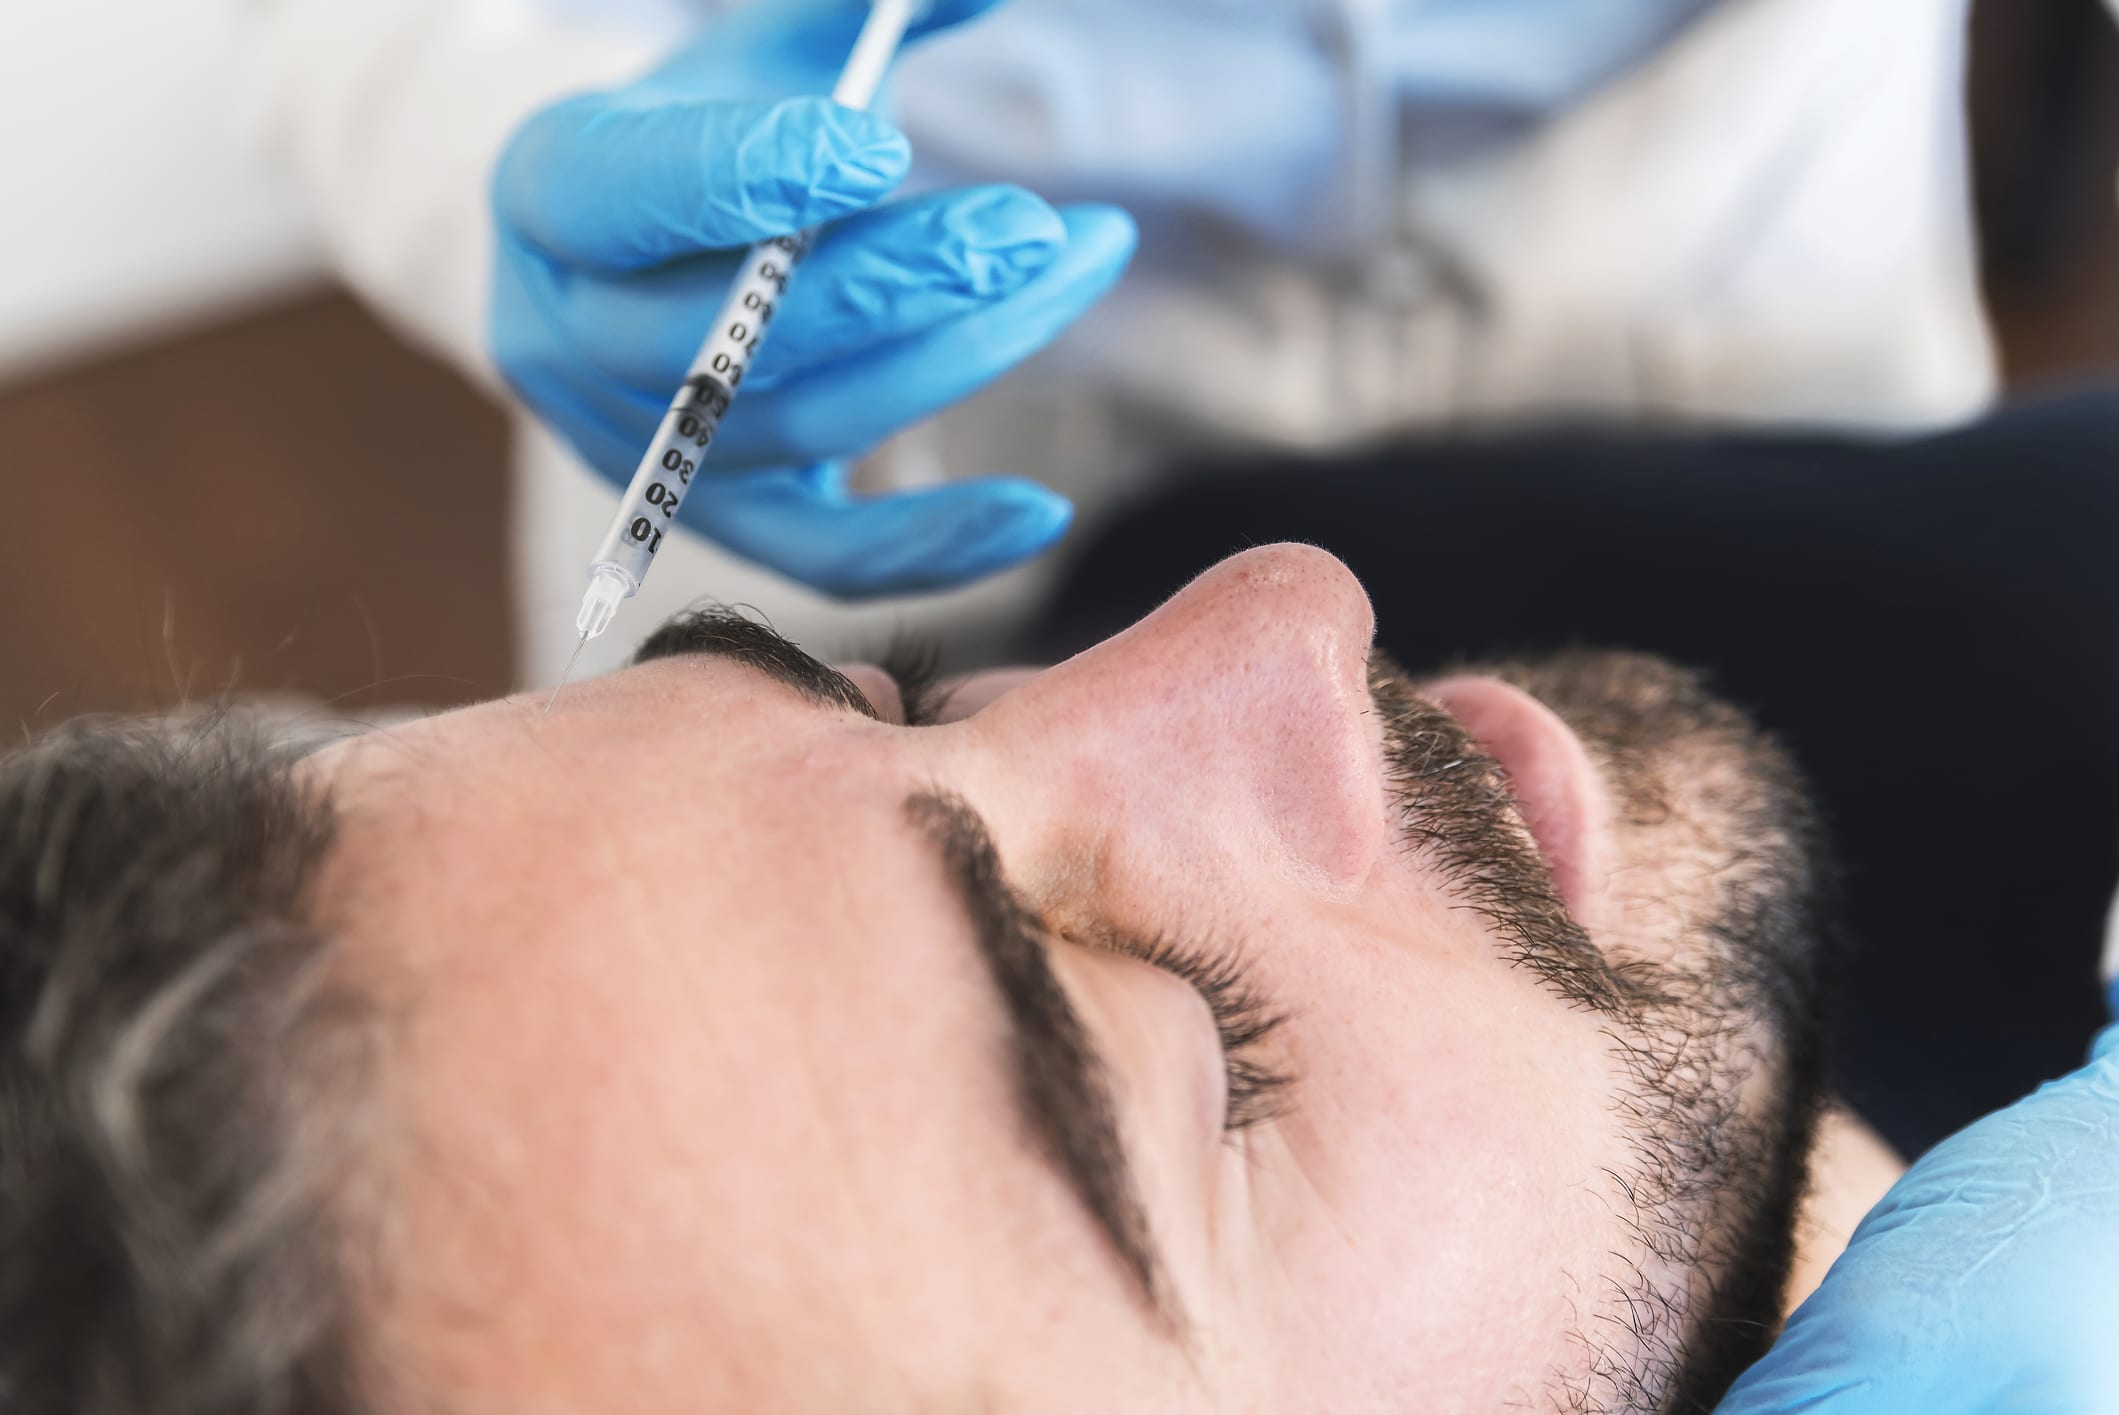 Close up of man at clinic receiving injection fillers on forehead.